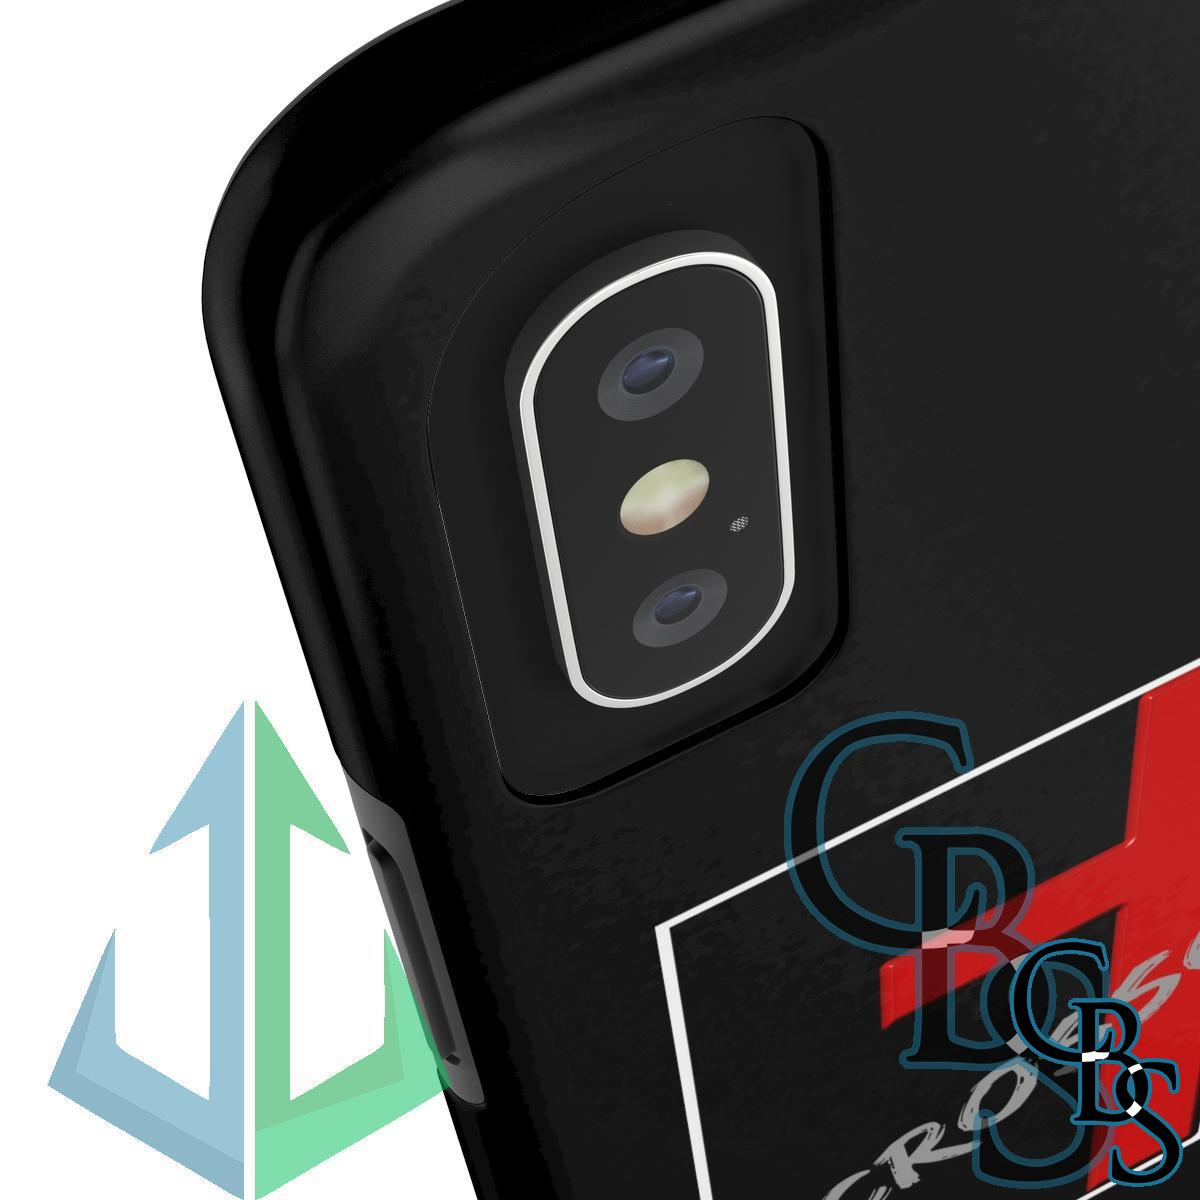 Crossover Tough iPhone Cases